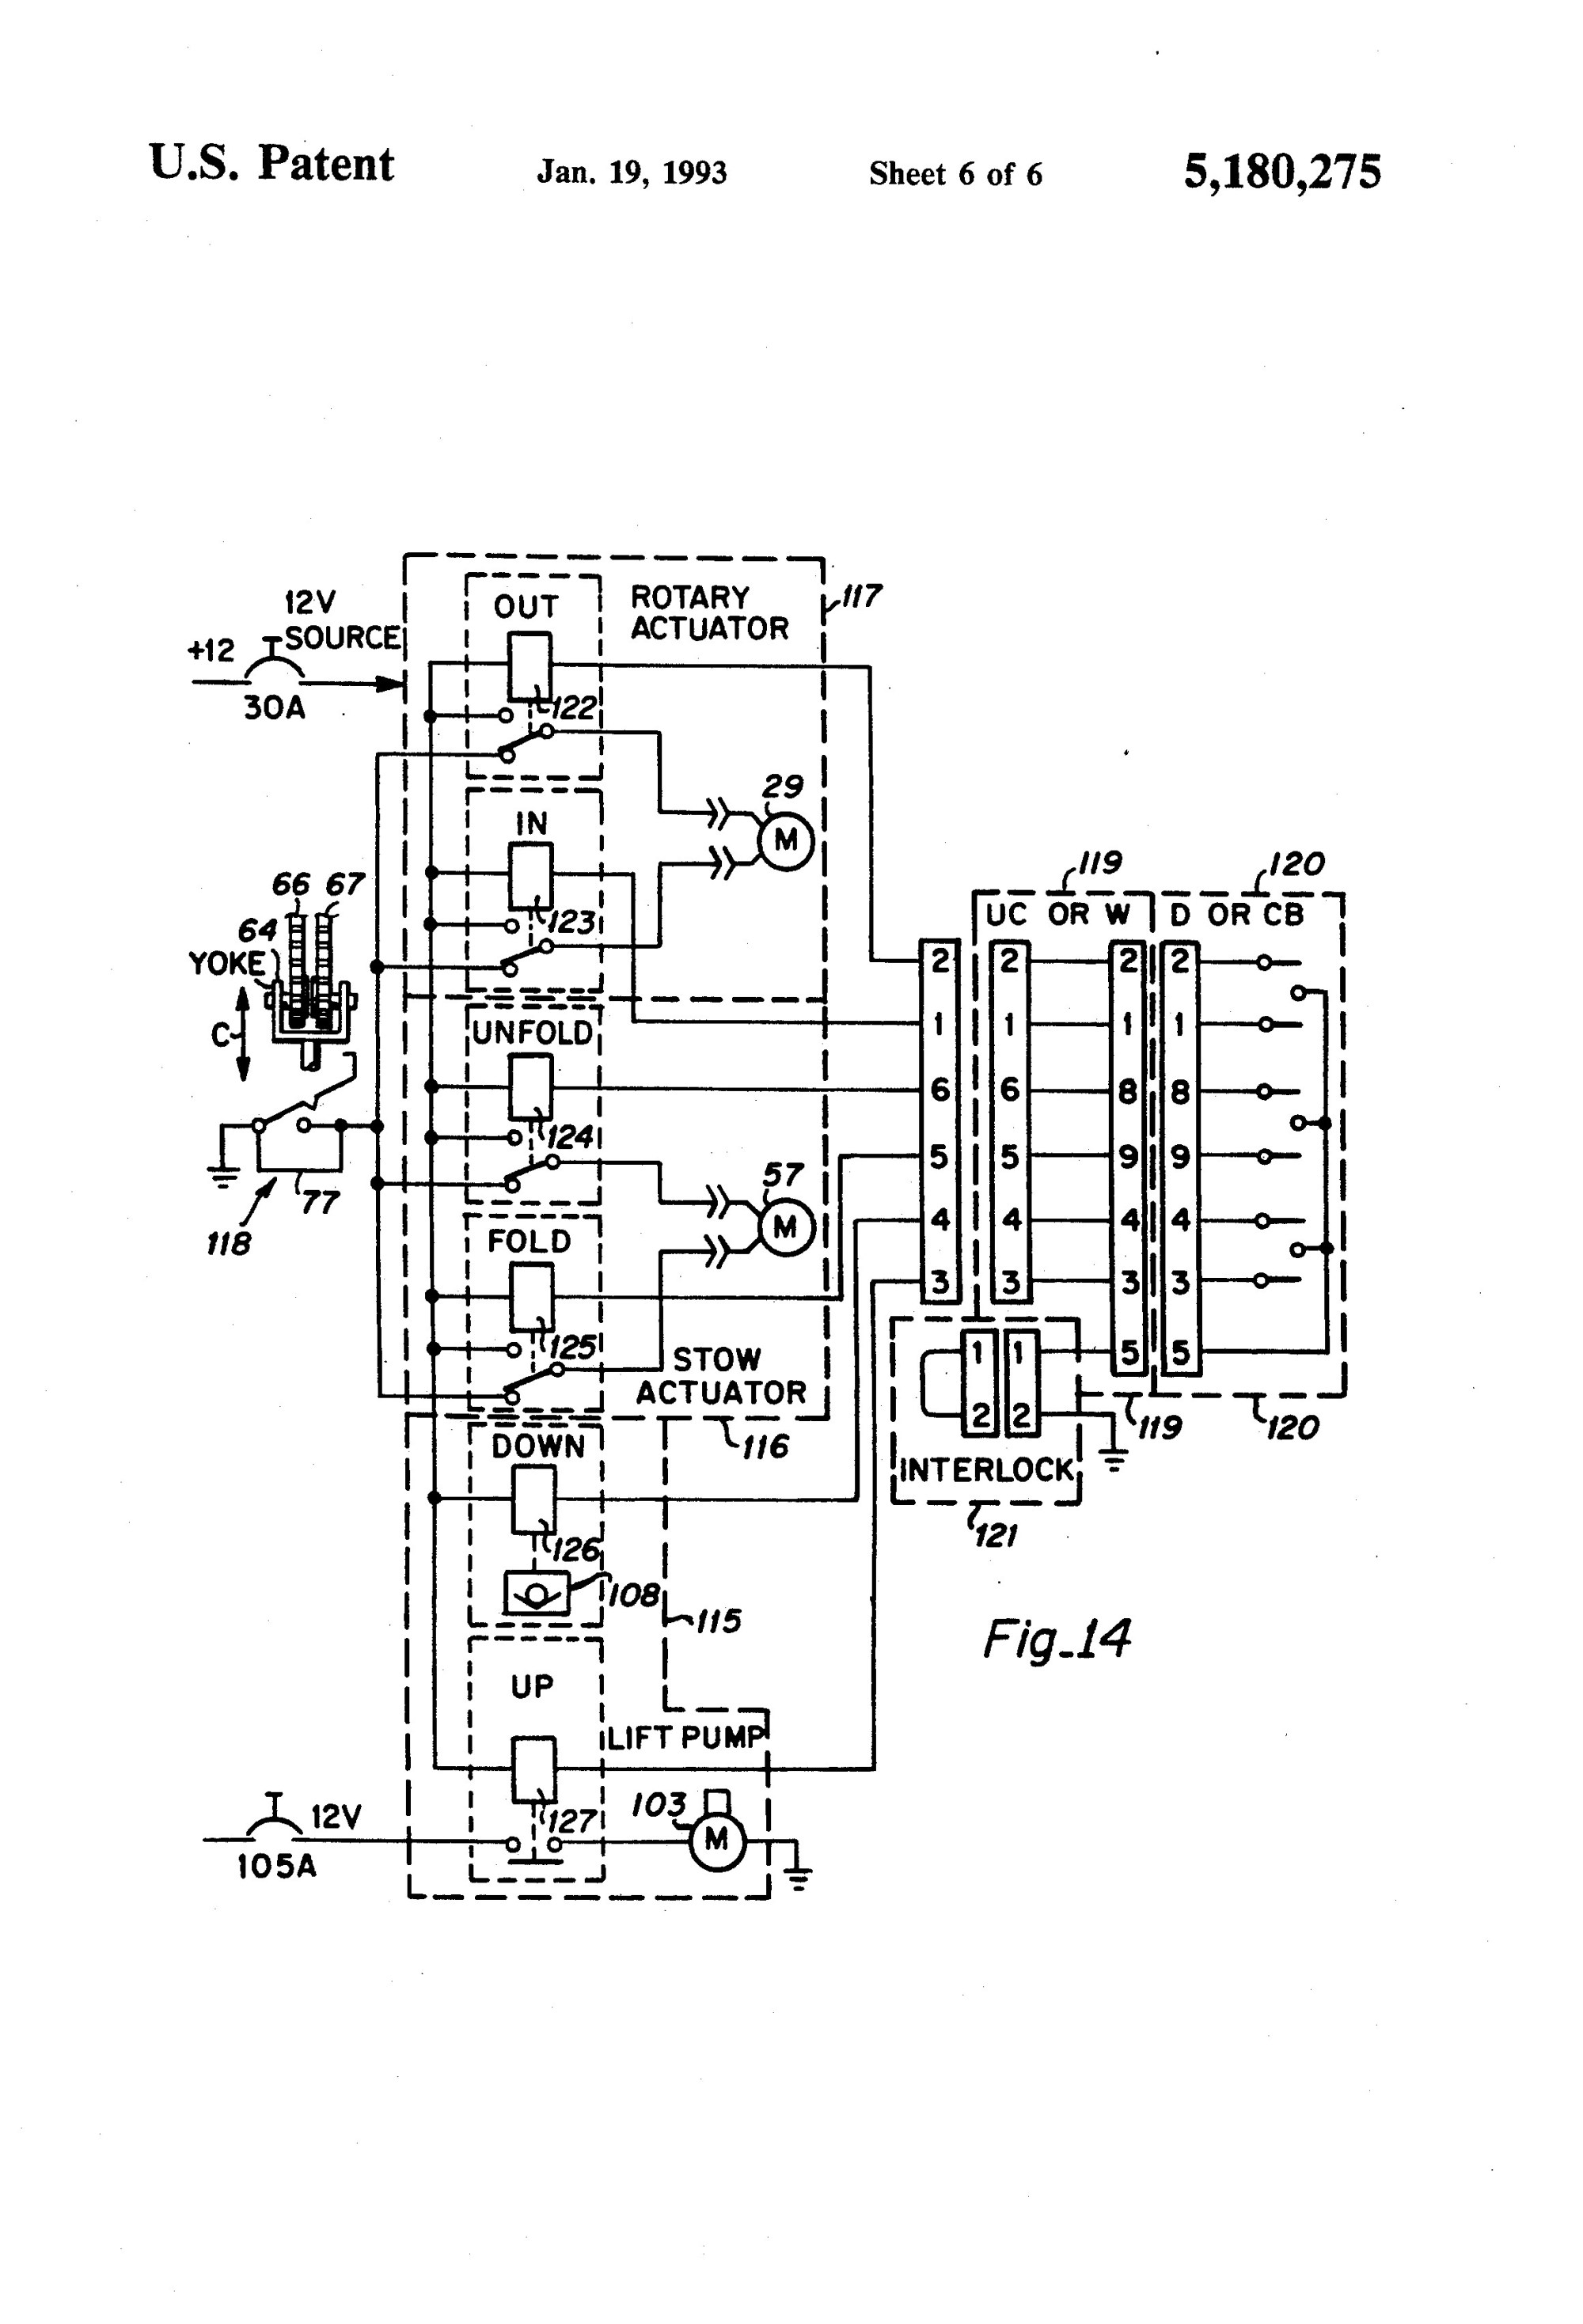 hight resolution of punch press line wiring diagram wiring diagram databasecollection of crow river wheelchair lift wiring diagram sample